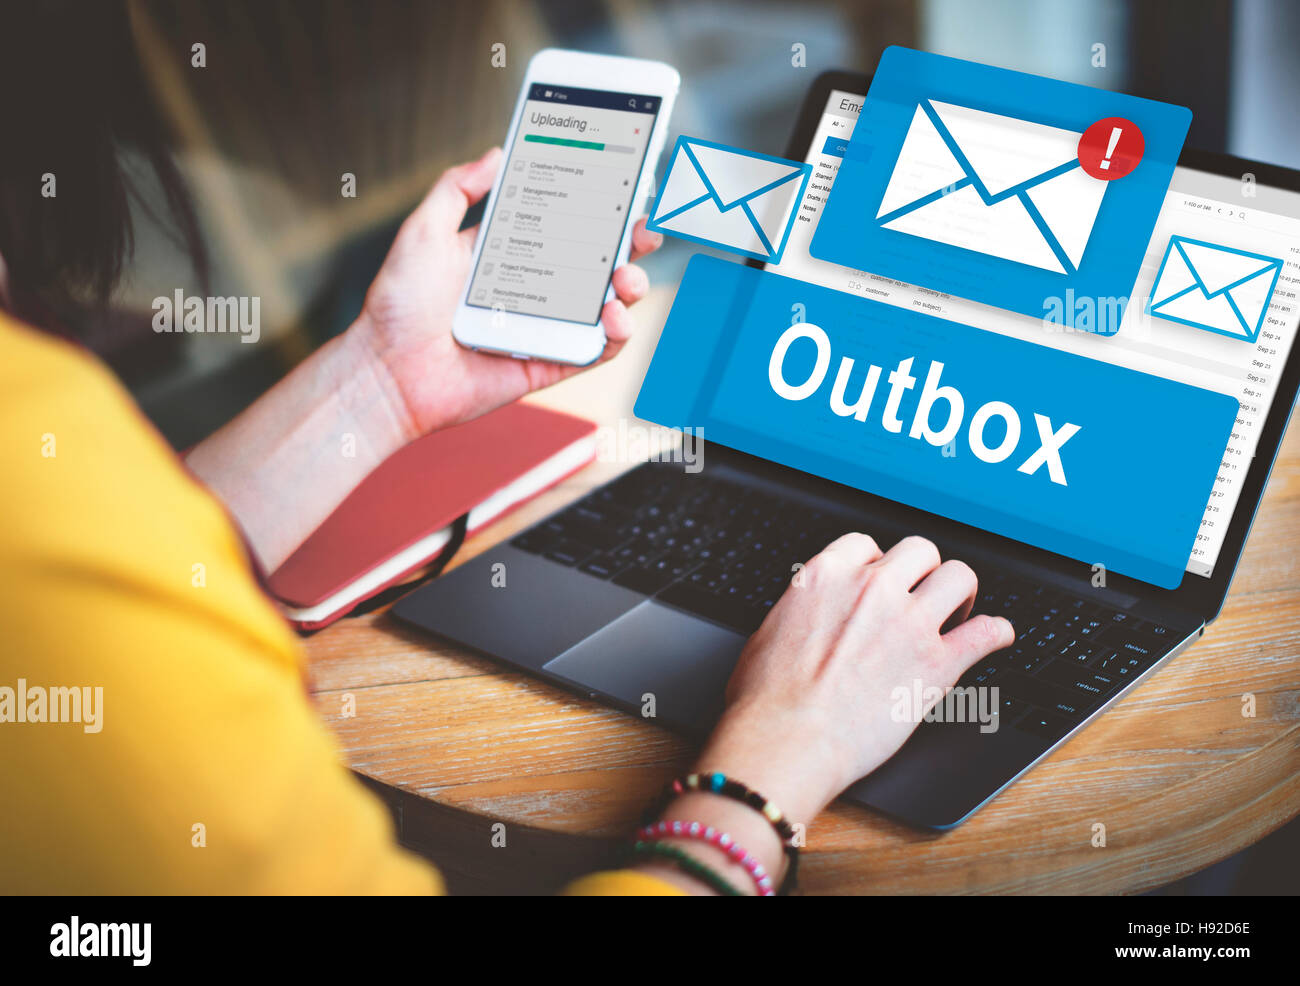 Outbox Business Communication Envelope Mail Concept - Stock Image